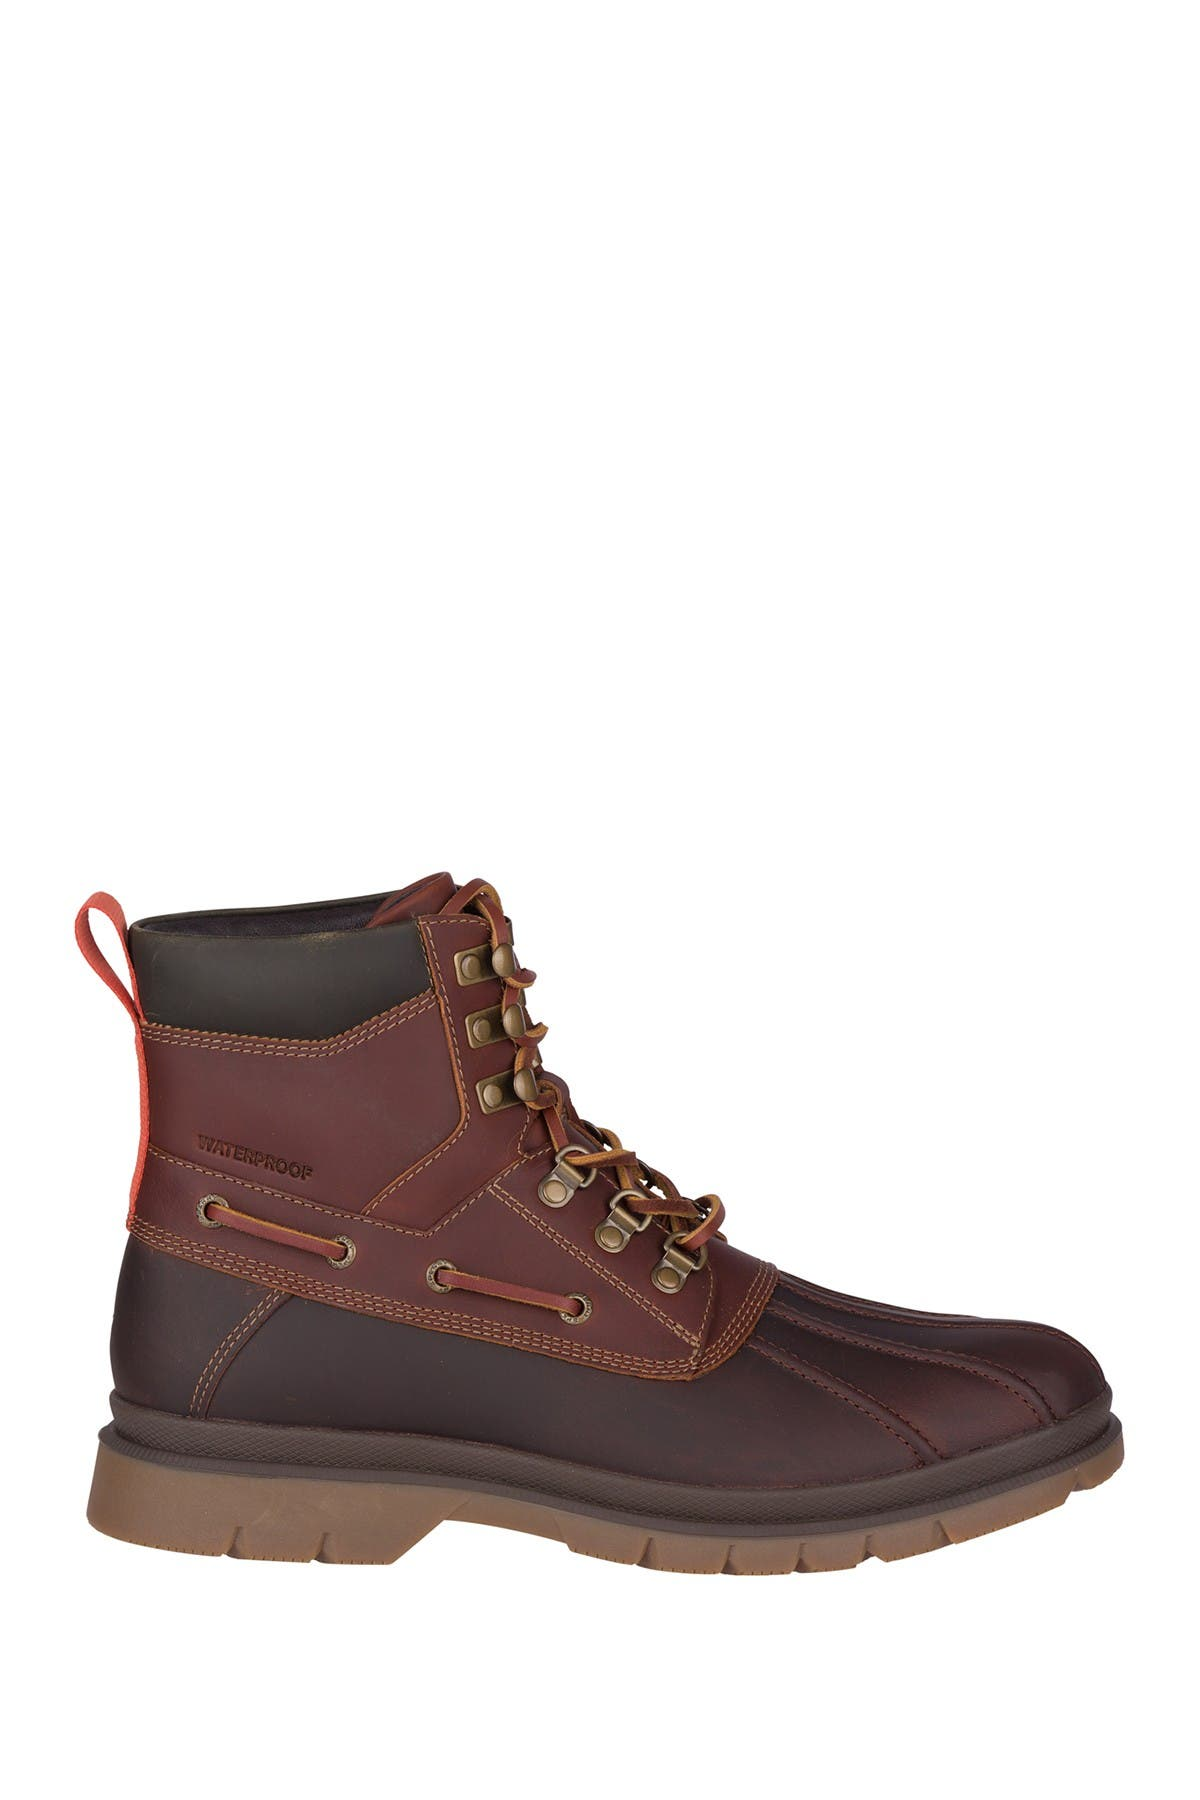 Image of Sperry Watertown Waterproof Leather Lace-Up Boot